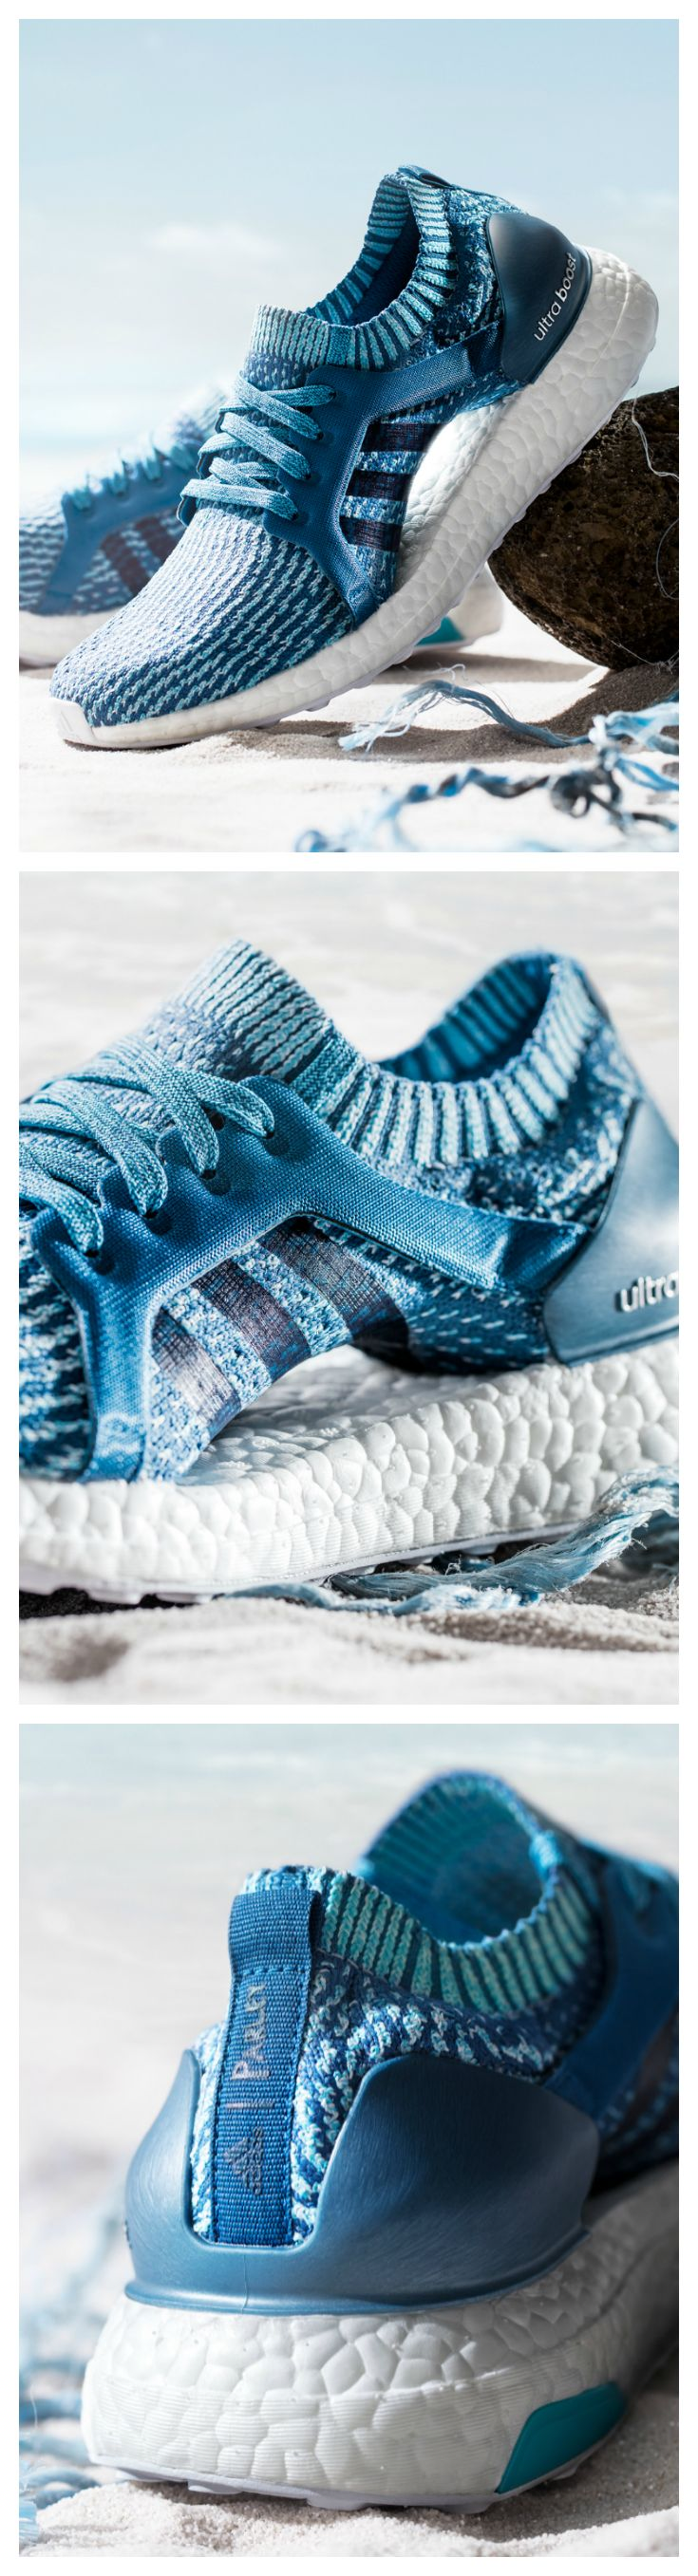 Cushioned comfort. Sustainable style. The adidas Ultra Boost X Parley — made from recycled plastic — is available now.